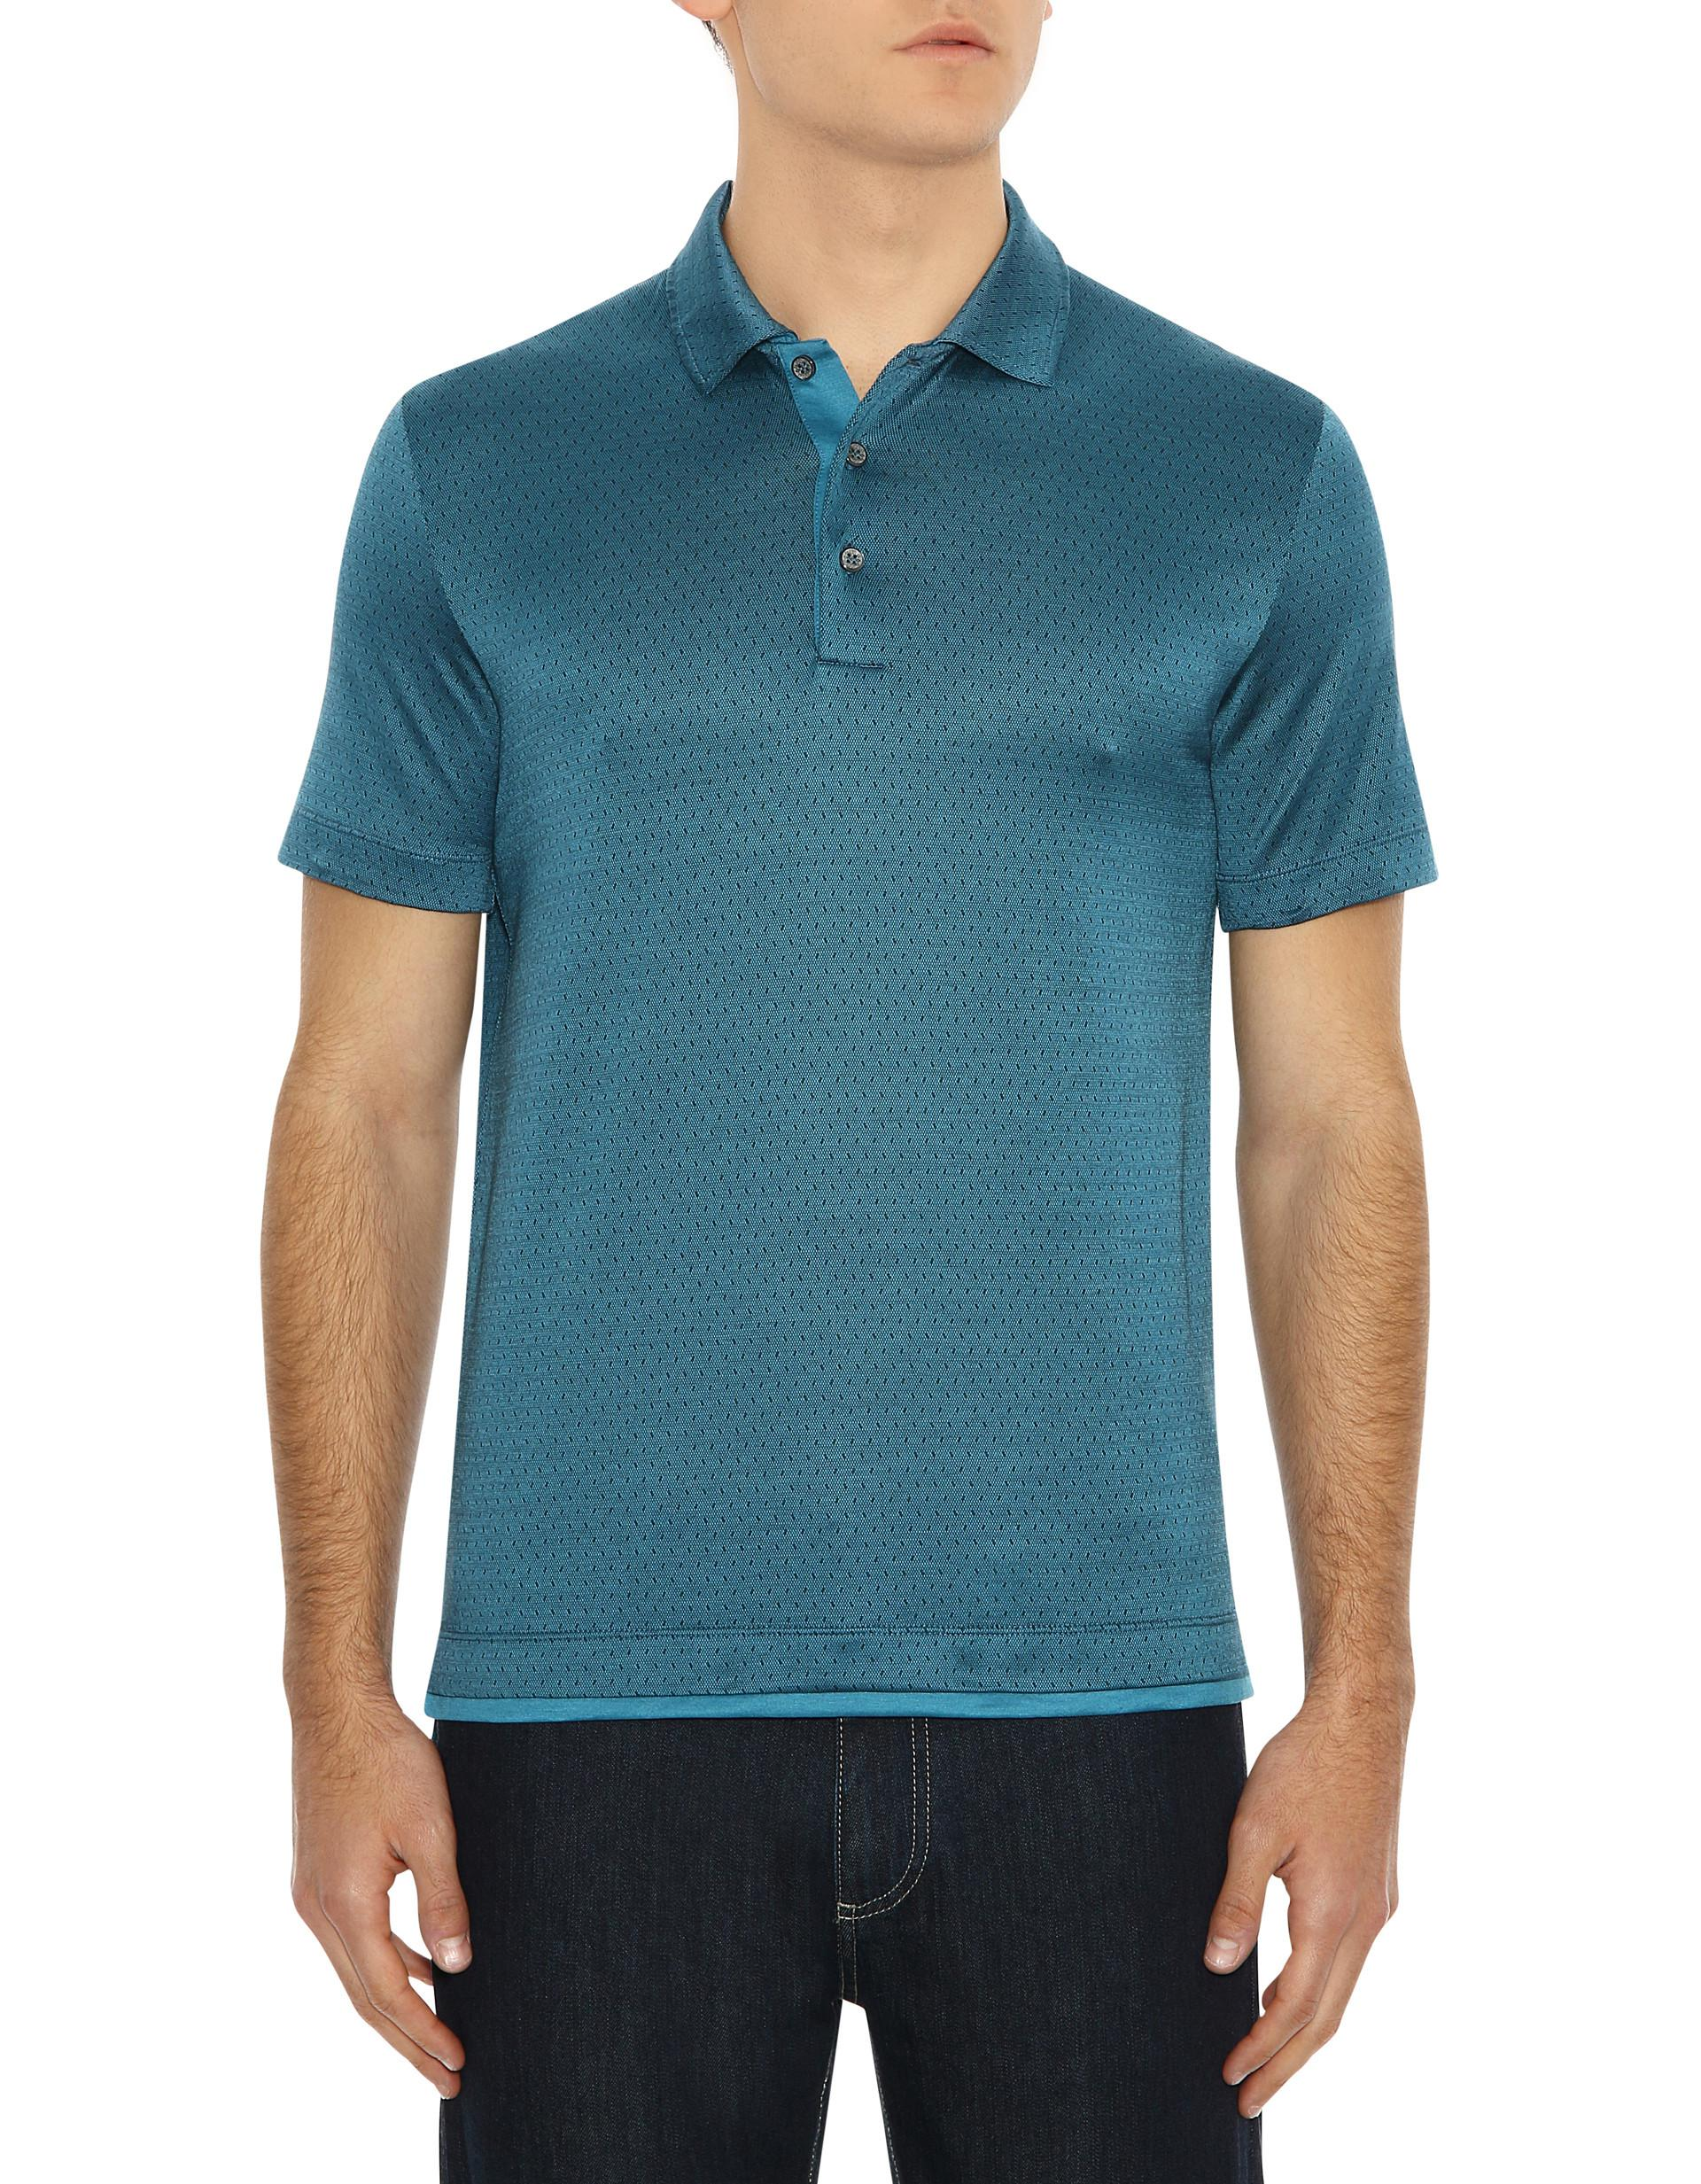 ecacb3c4a35 Lyst - Canali Teal Mercerized Cotton Polo Shirt With Micro-motif in Blue  for Men